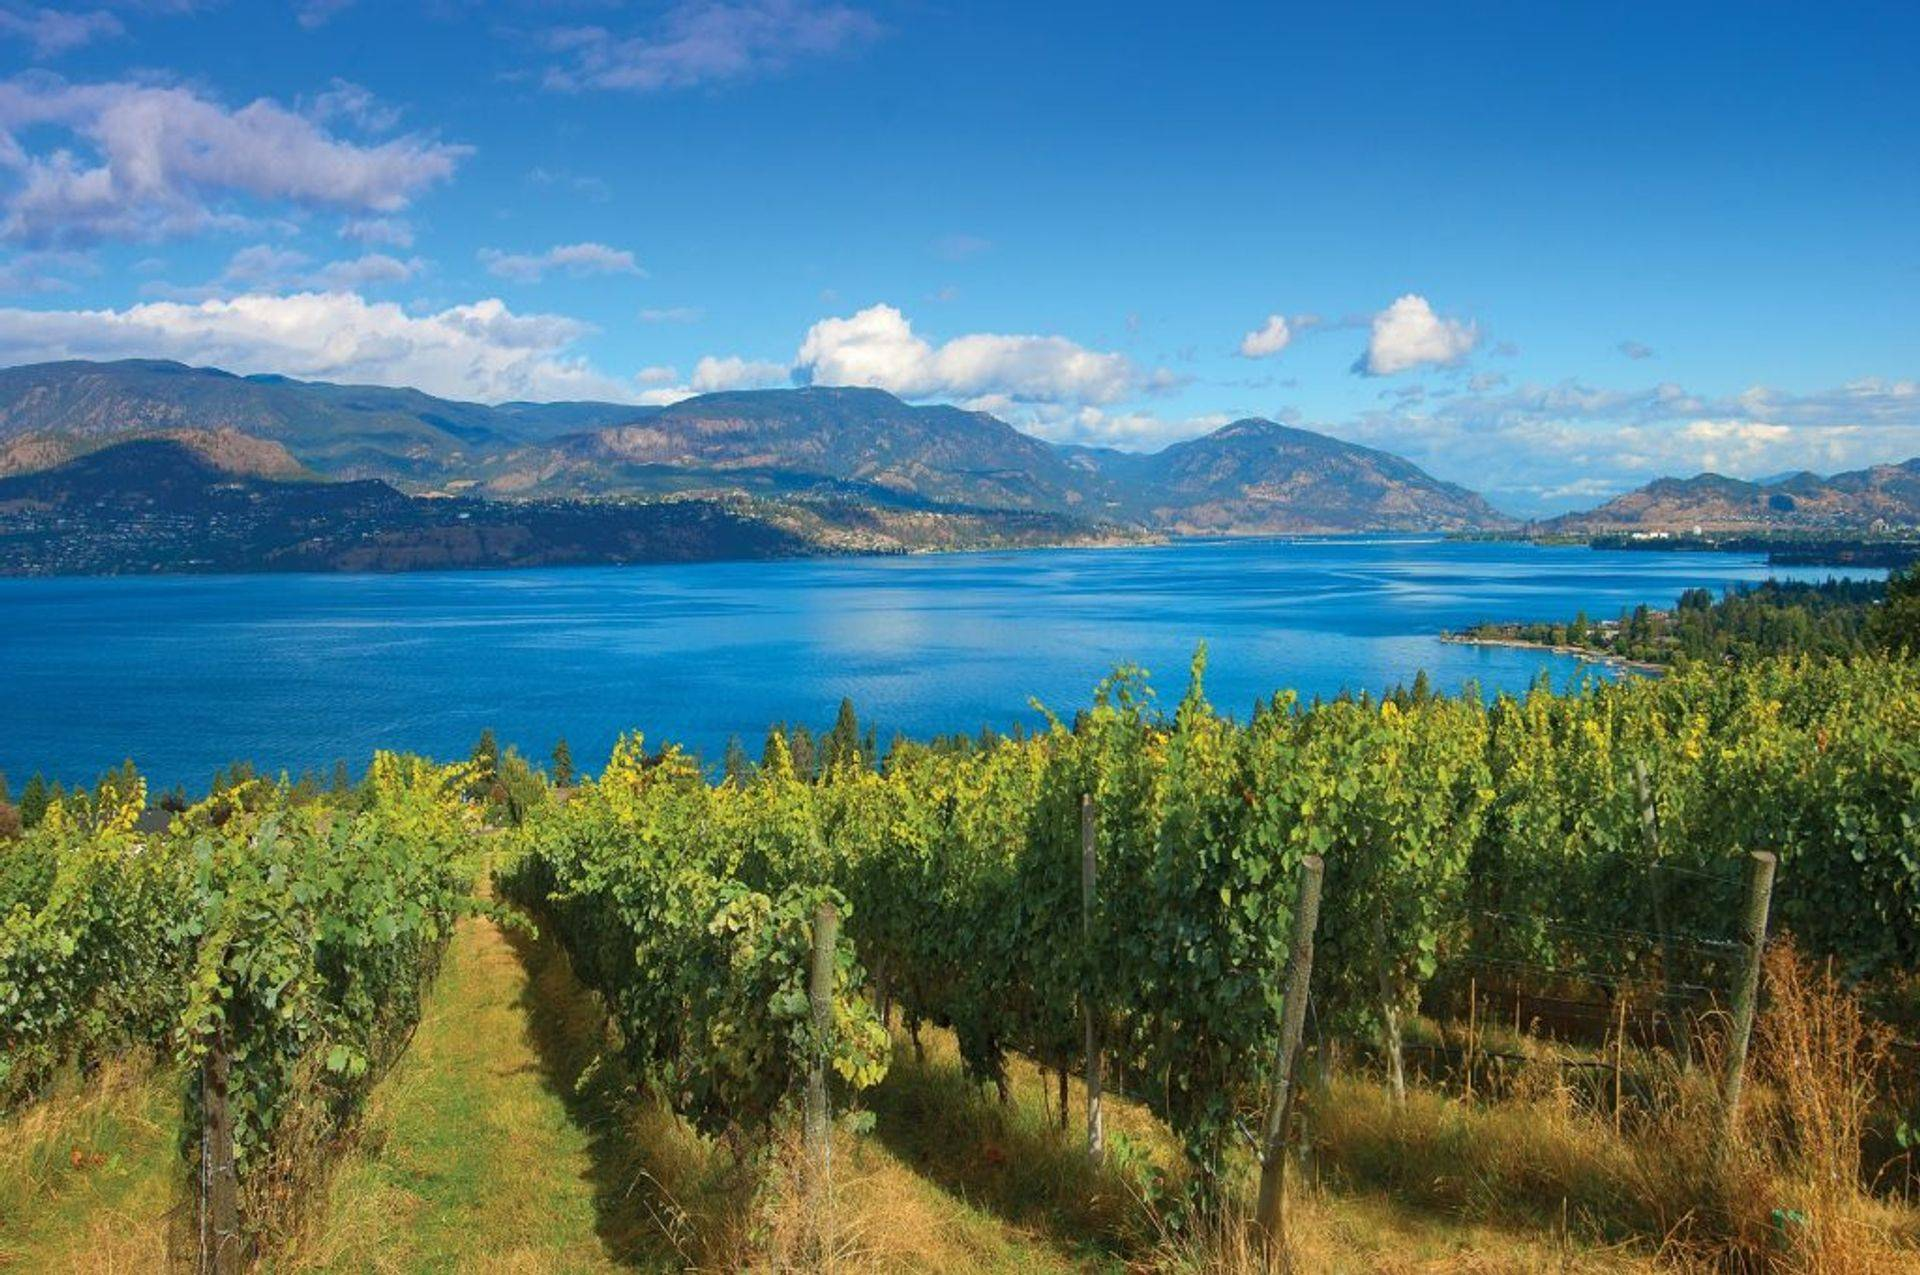 Say High to Okanagan Tours adventure tours for individuals and groups tours.